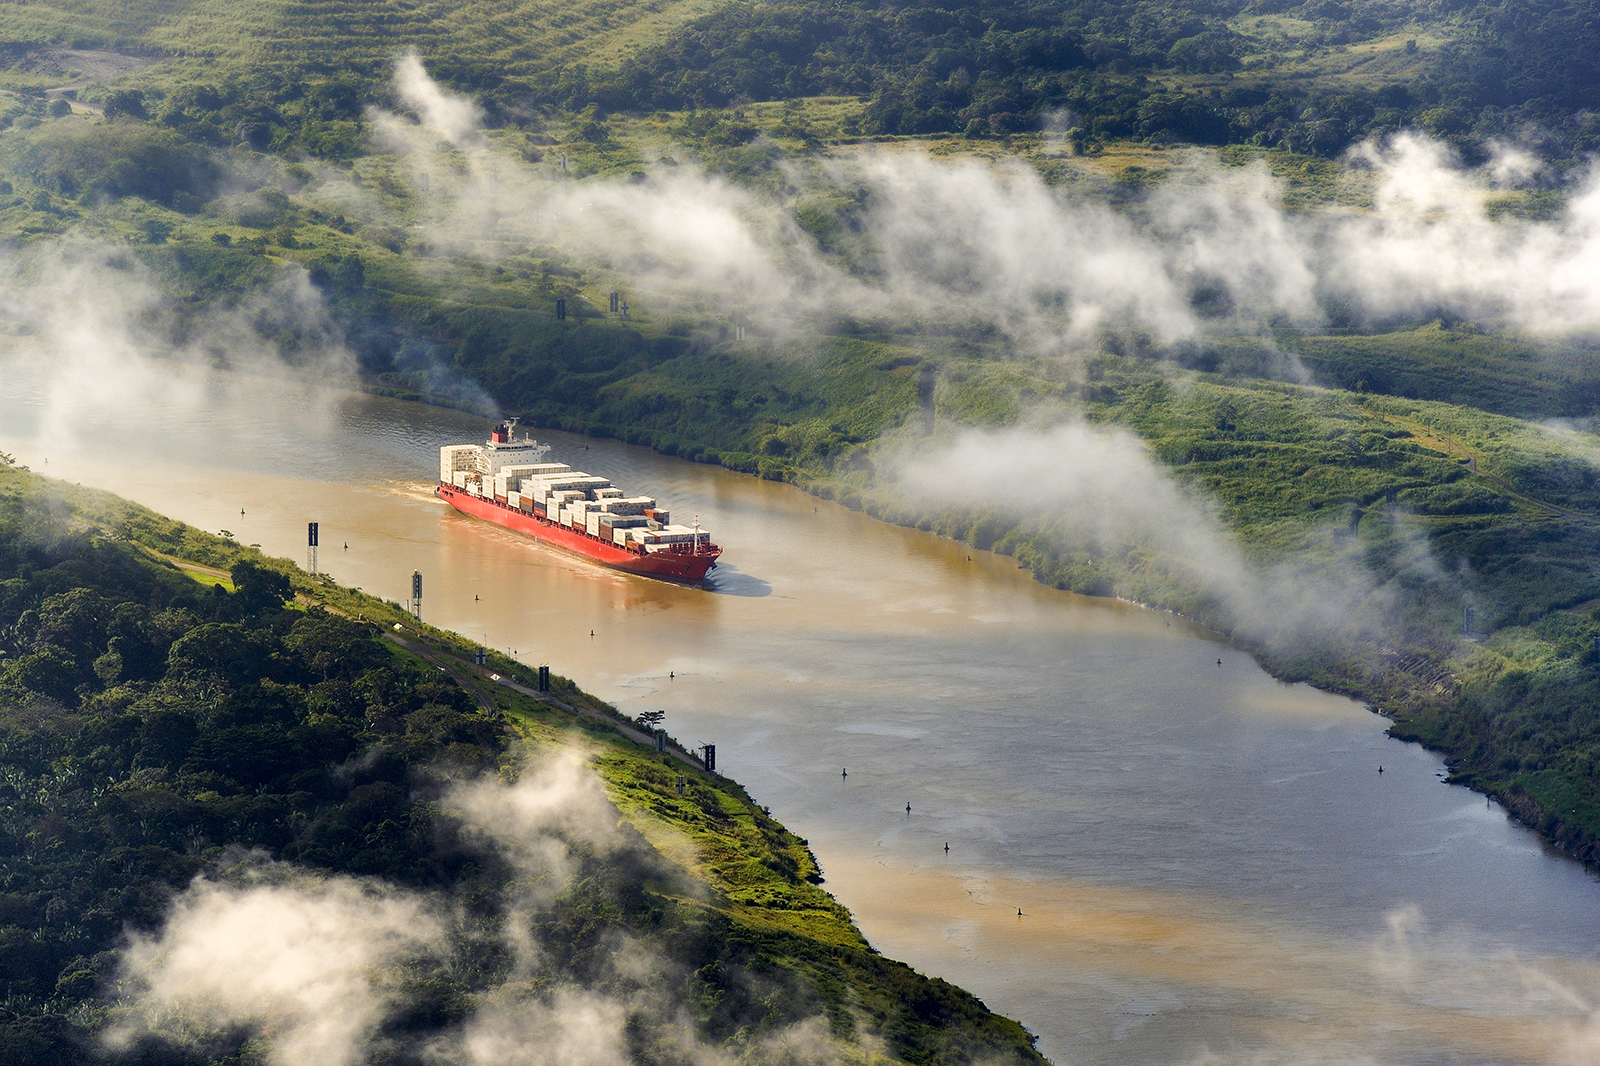 Panama, Panama Canal, a Panamax container cargo uses the Gaillard cut (or Culebra cut) between the Pedro Miguel locks on the Pacific side and the Chagres river leading to Gatun Lake (aerial view)